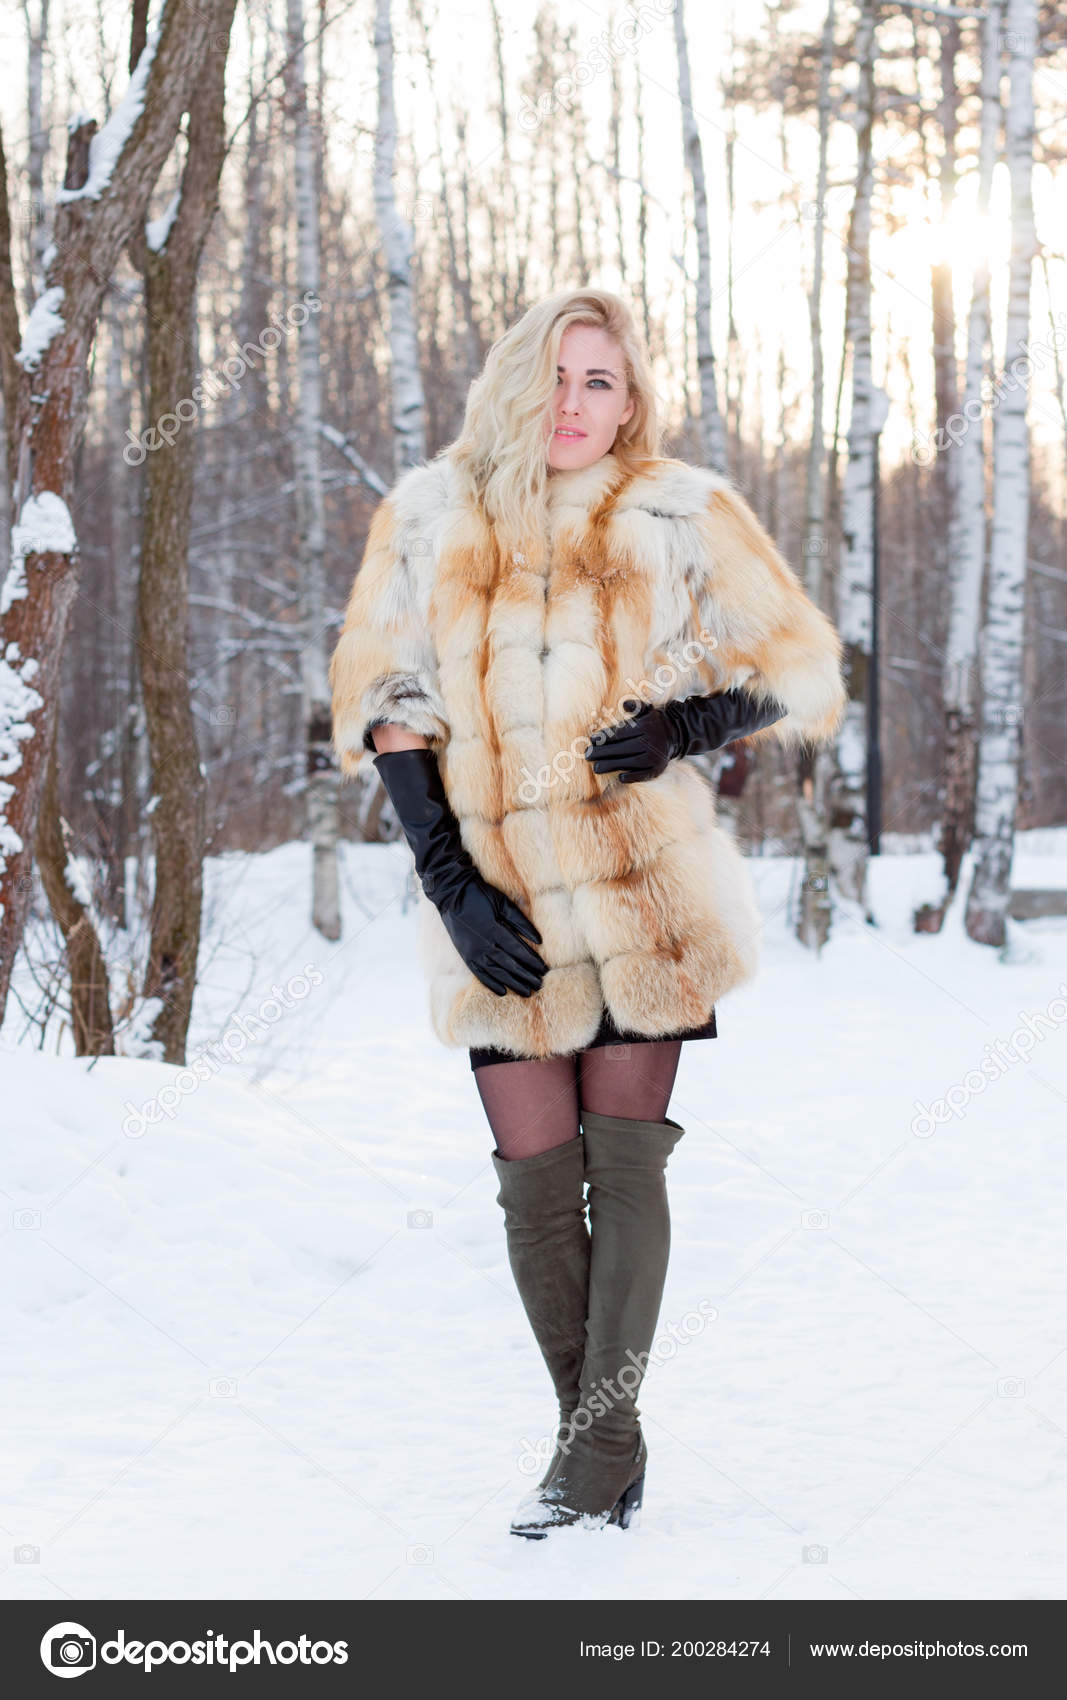 Are Beautiful blonde in fur coat the question